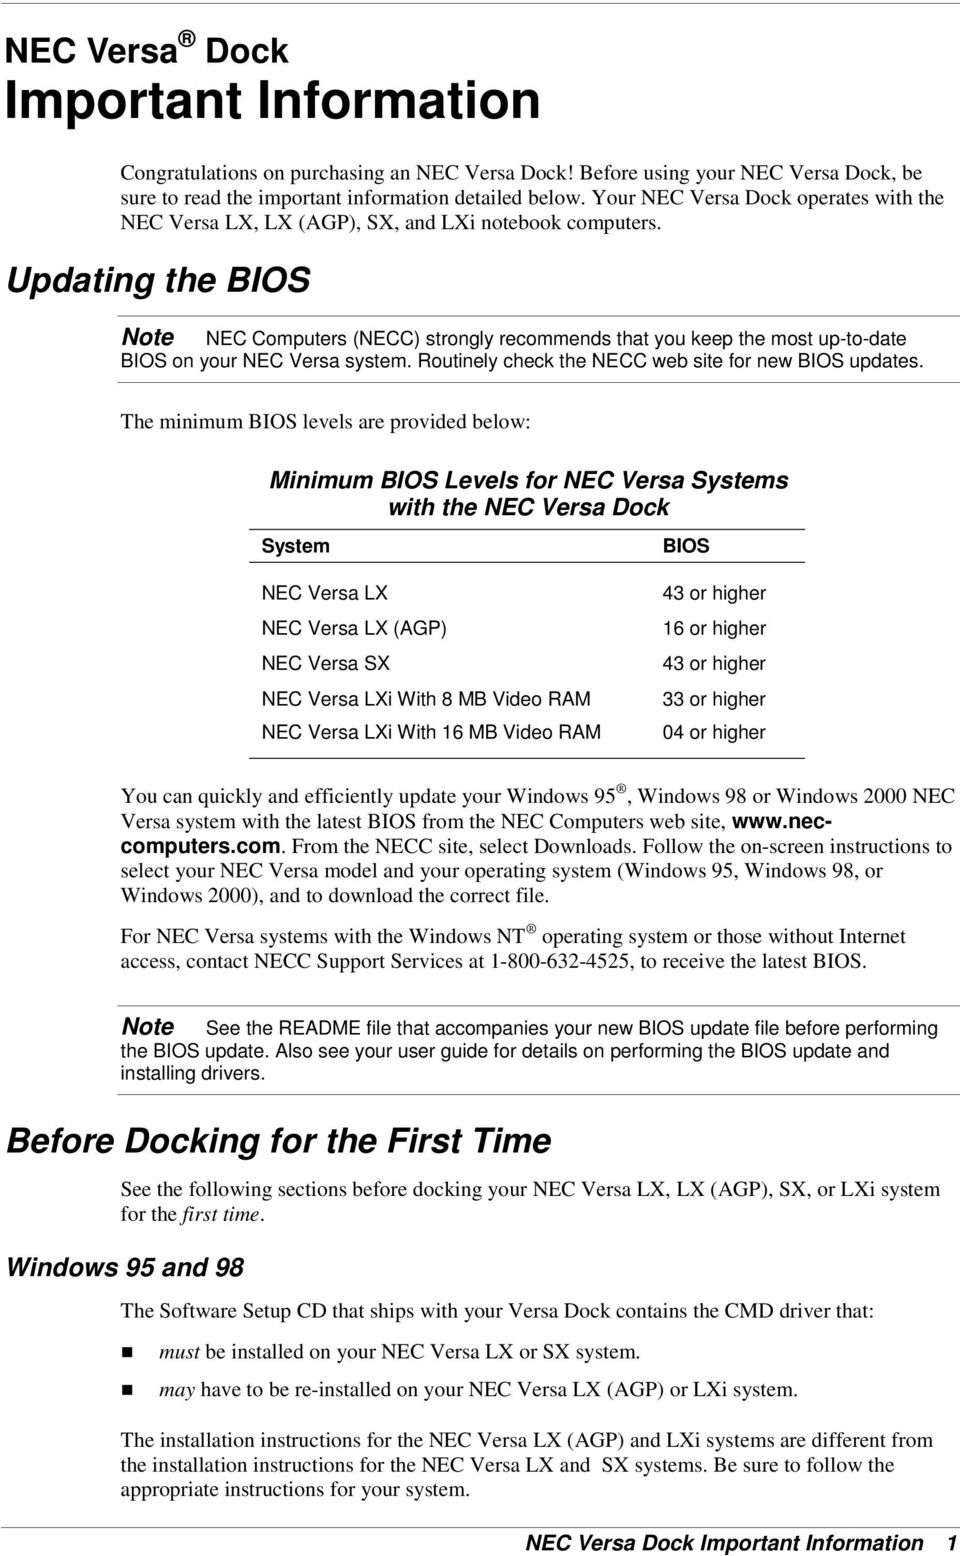 Updating the BIOS NEC Computers (NECC) strongly recommends that you keep the most up-to-date BIOS on your NEC Versa system. Routinely check the NECC web site for new BIOS updates.